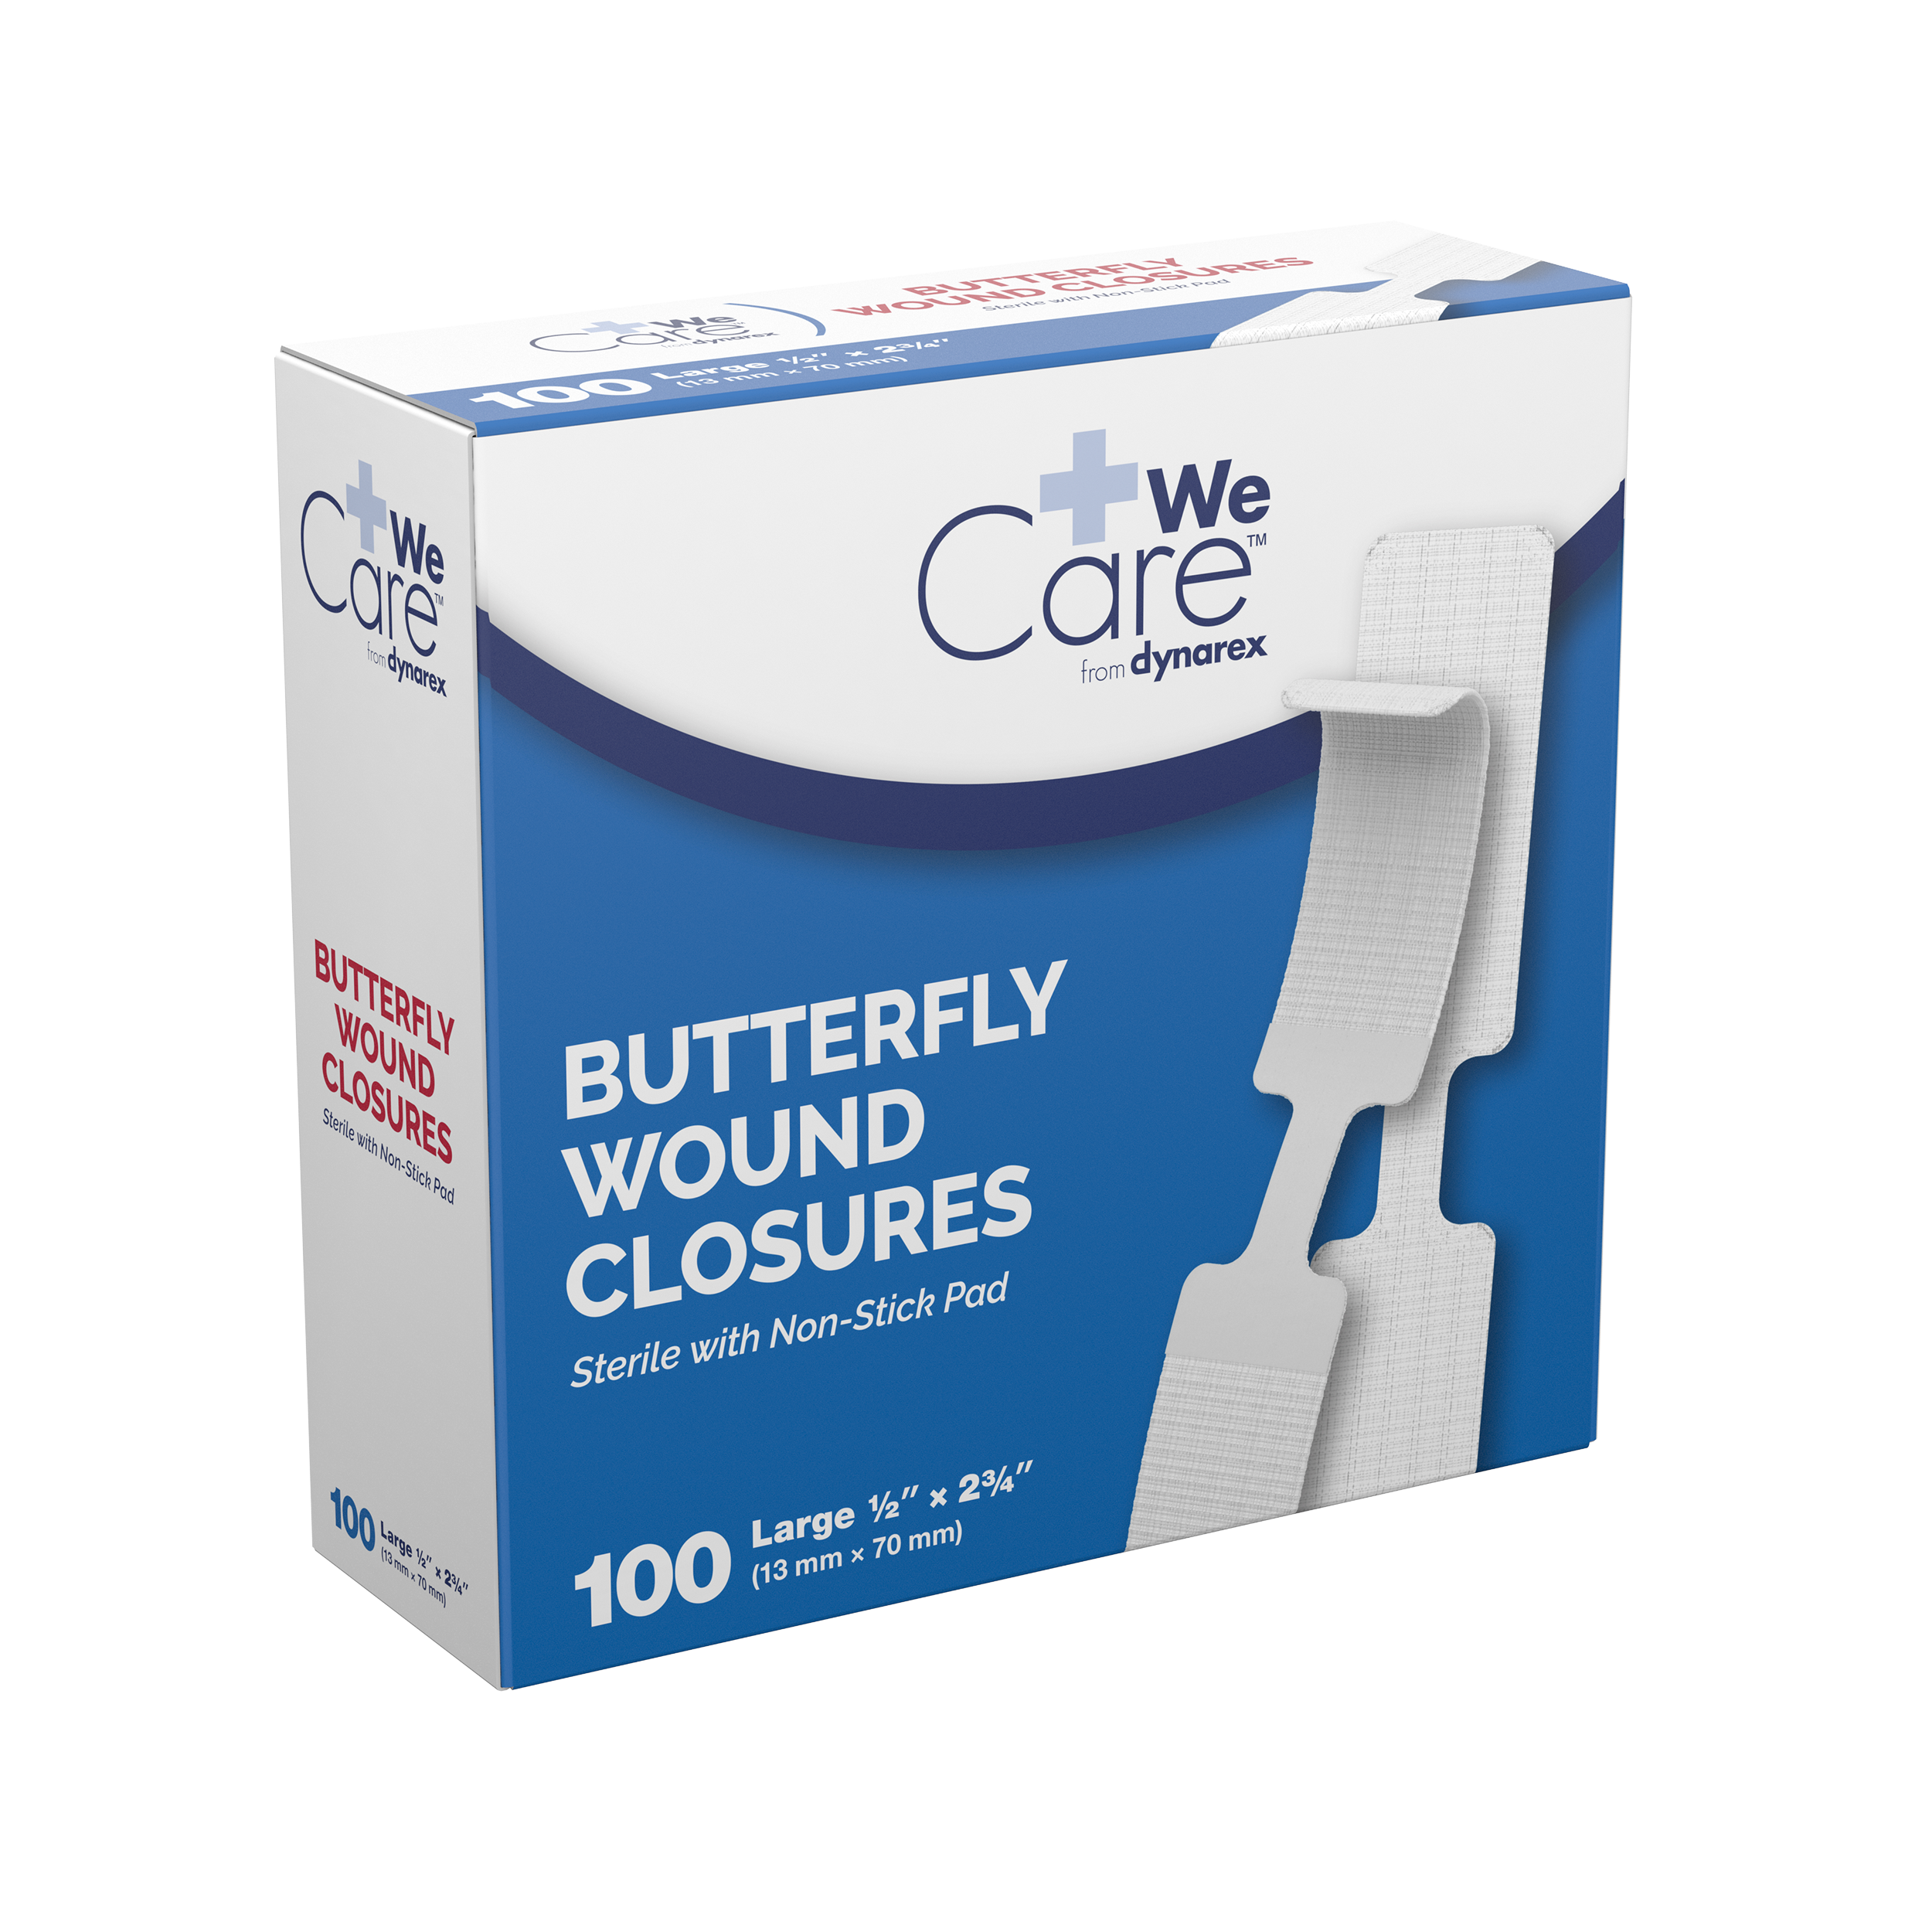 Butterfly Wound Closure Sterile - 1/2